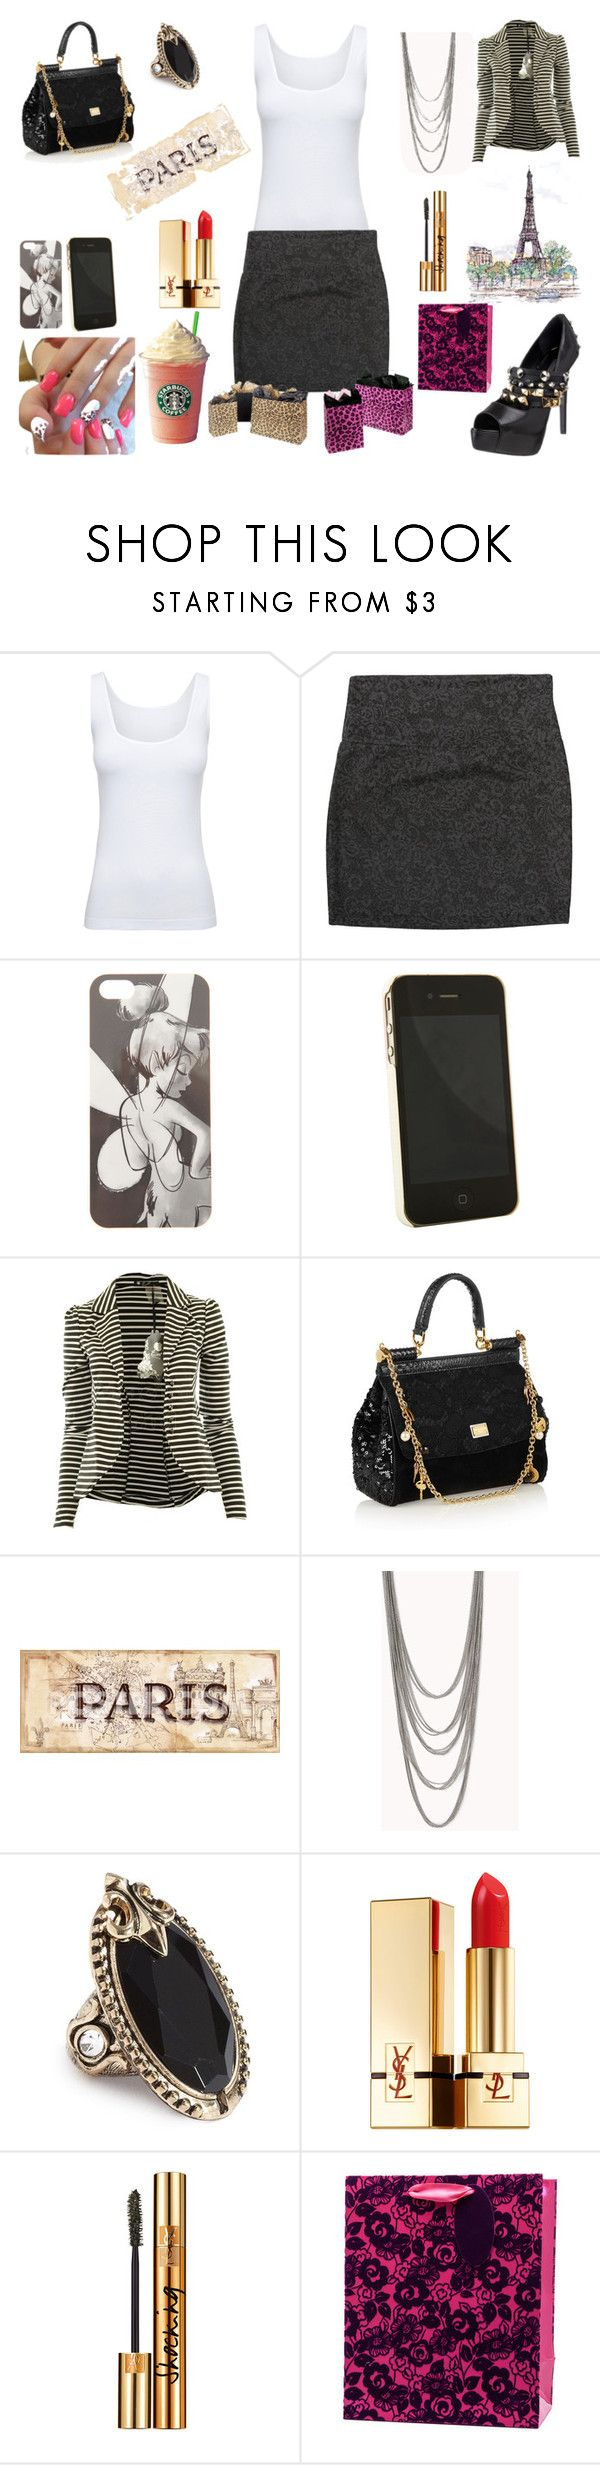 """Shopping in Paris"" by irishchick11 ❤ liked on Polyvore featuring Boody, Ruthie Davis, Disney, Pantone, CO, Dolce&Gabbana, La Tour Eiffel, Forever 21, GUESS and Yves Saint Laurent"